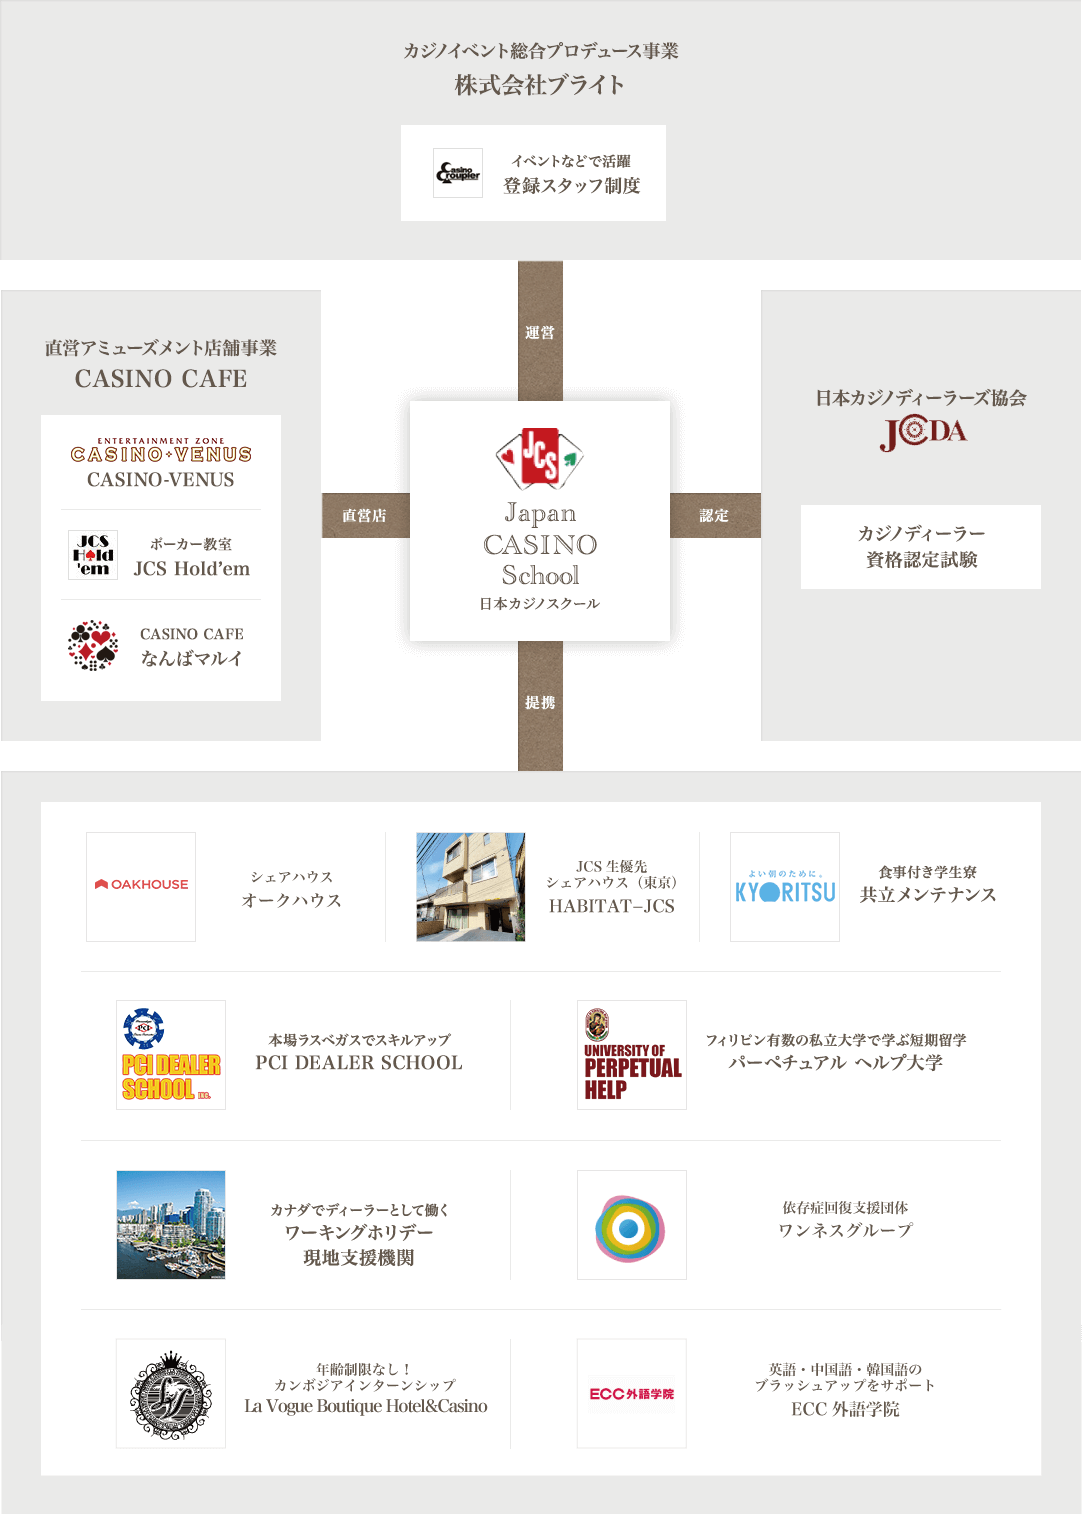 Related organizations that support Nippon Casino School